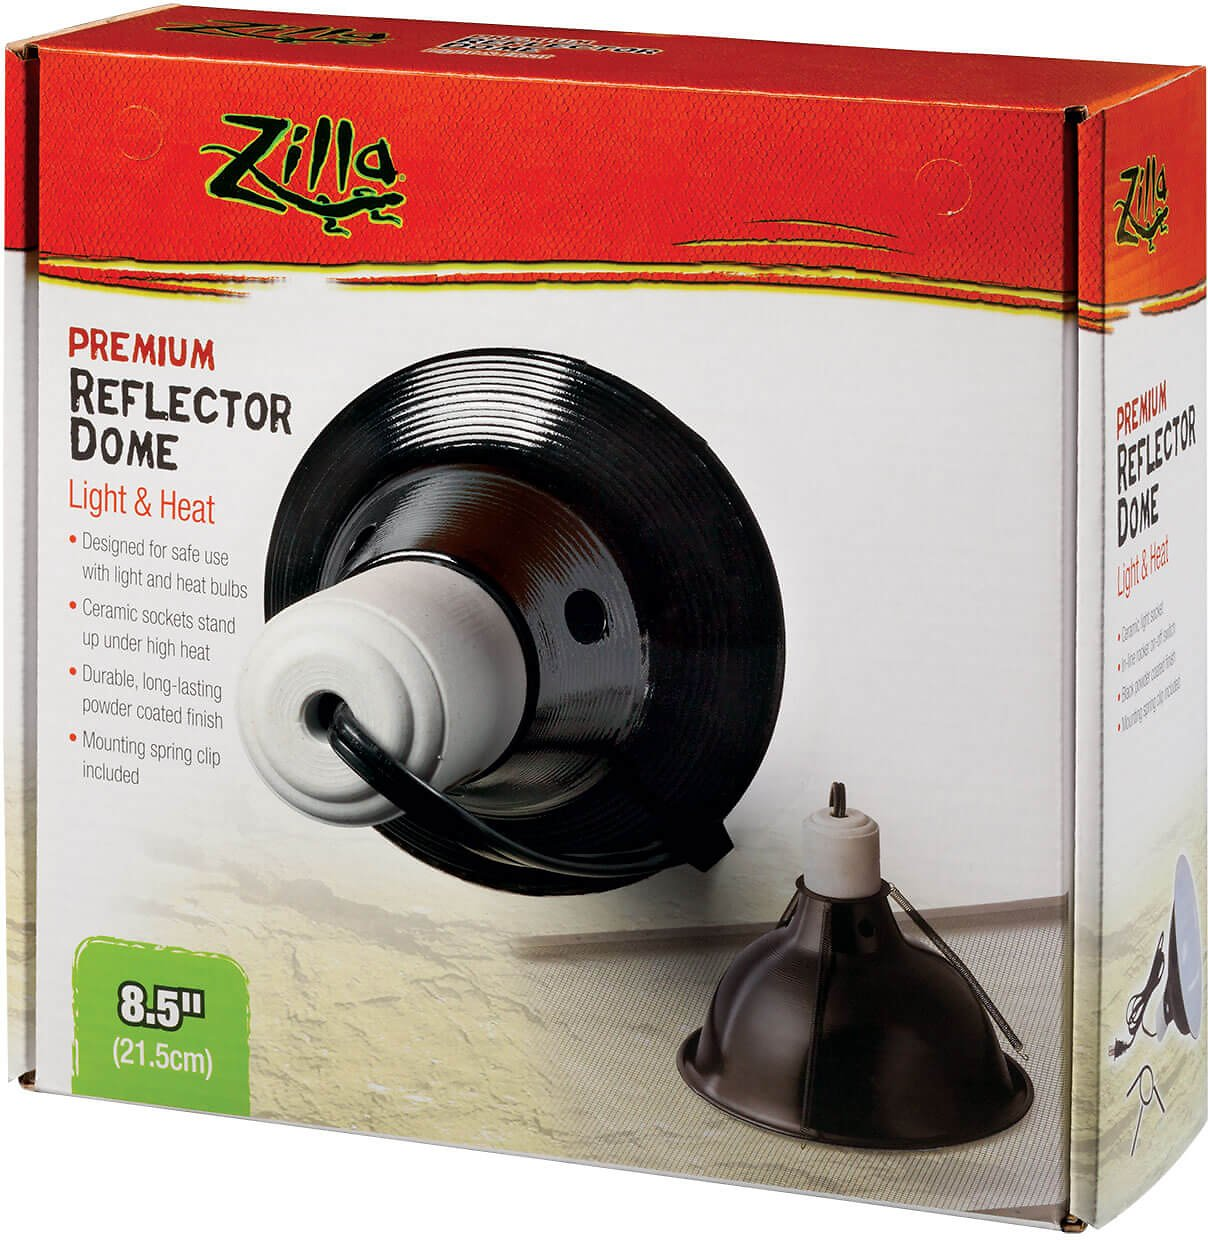 Zilla premium reflector light heat black ceramic dome lighting roll over image to zoom in arubaitofo Image collections